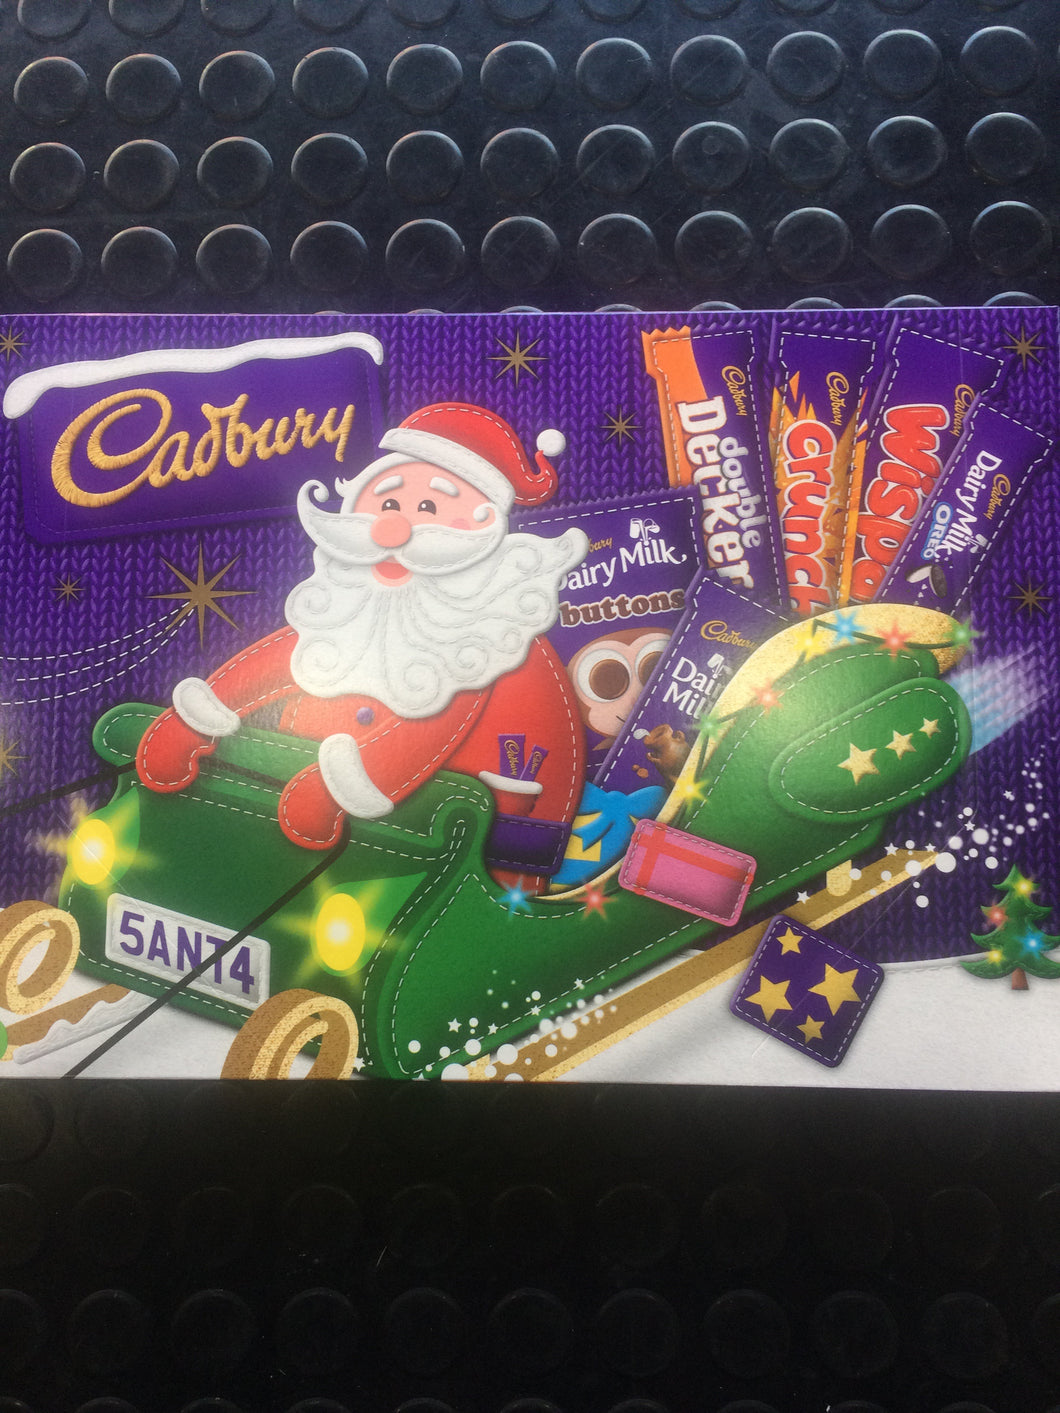 Cadbury Chocolate Assortment 169g